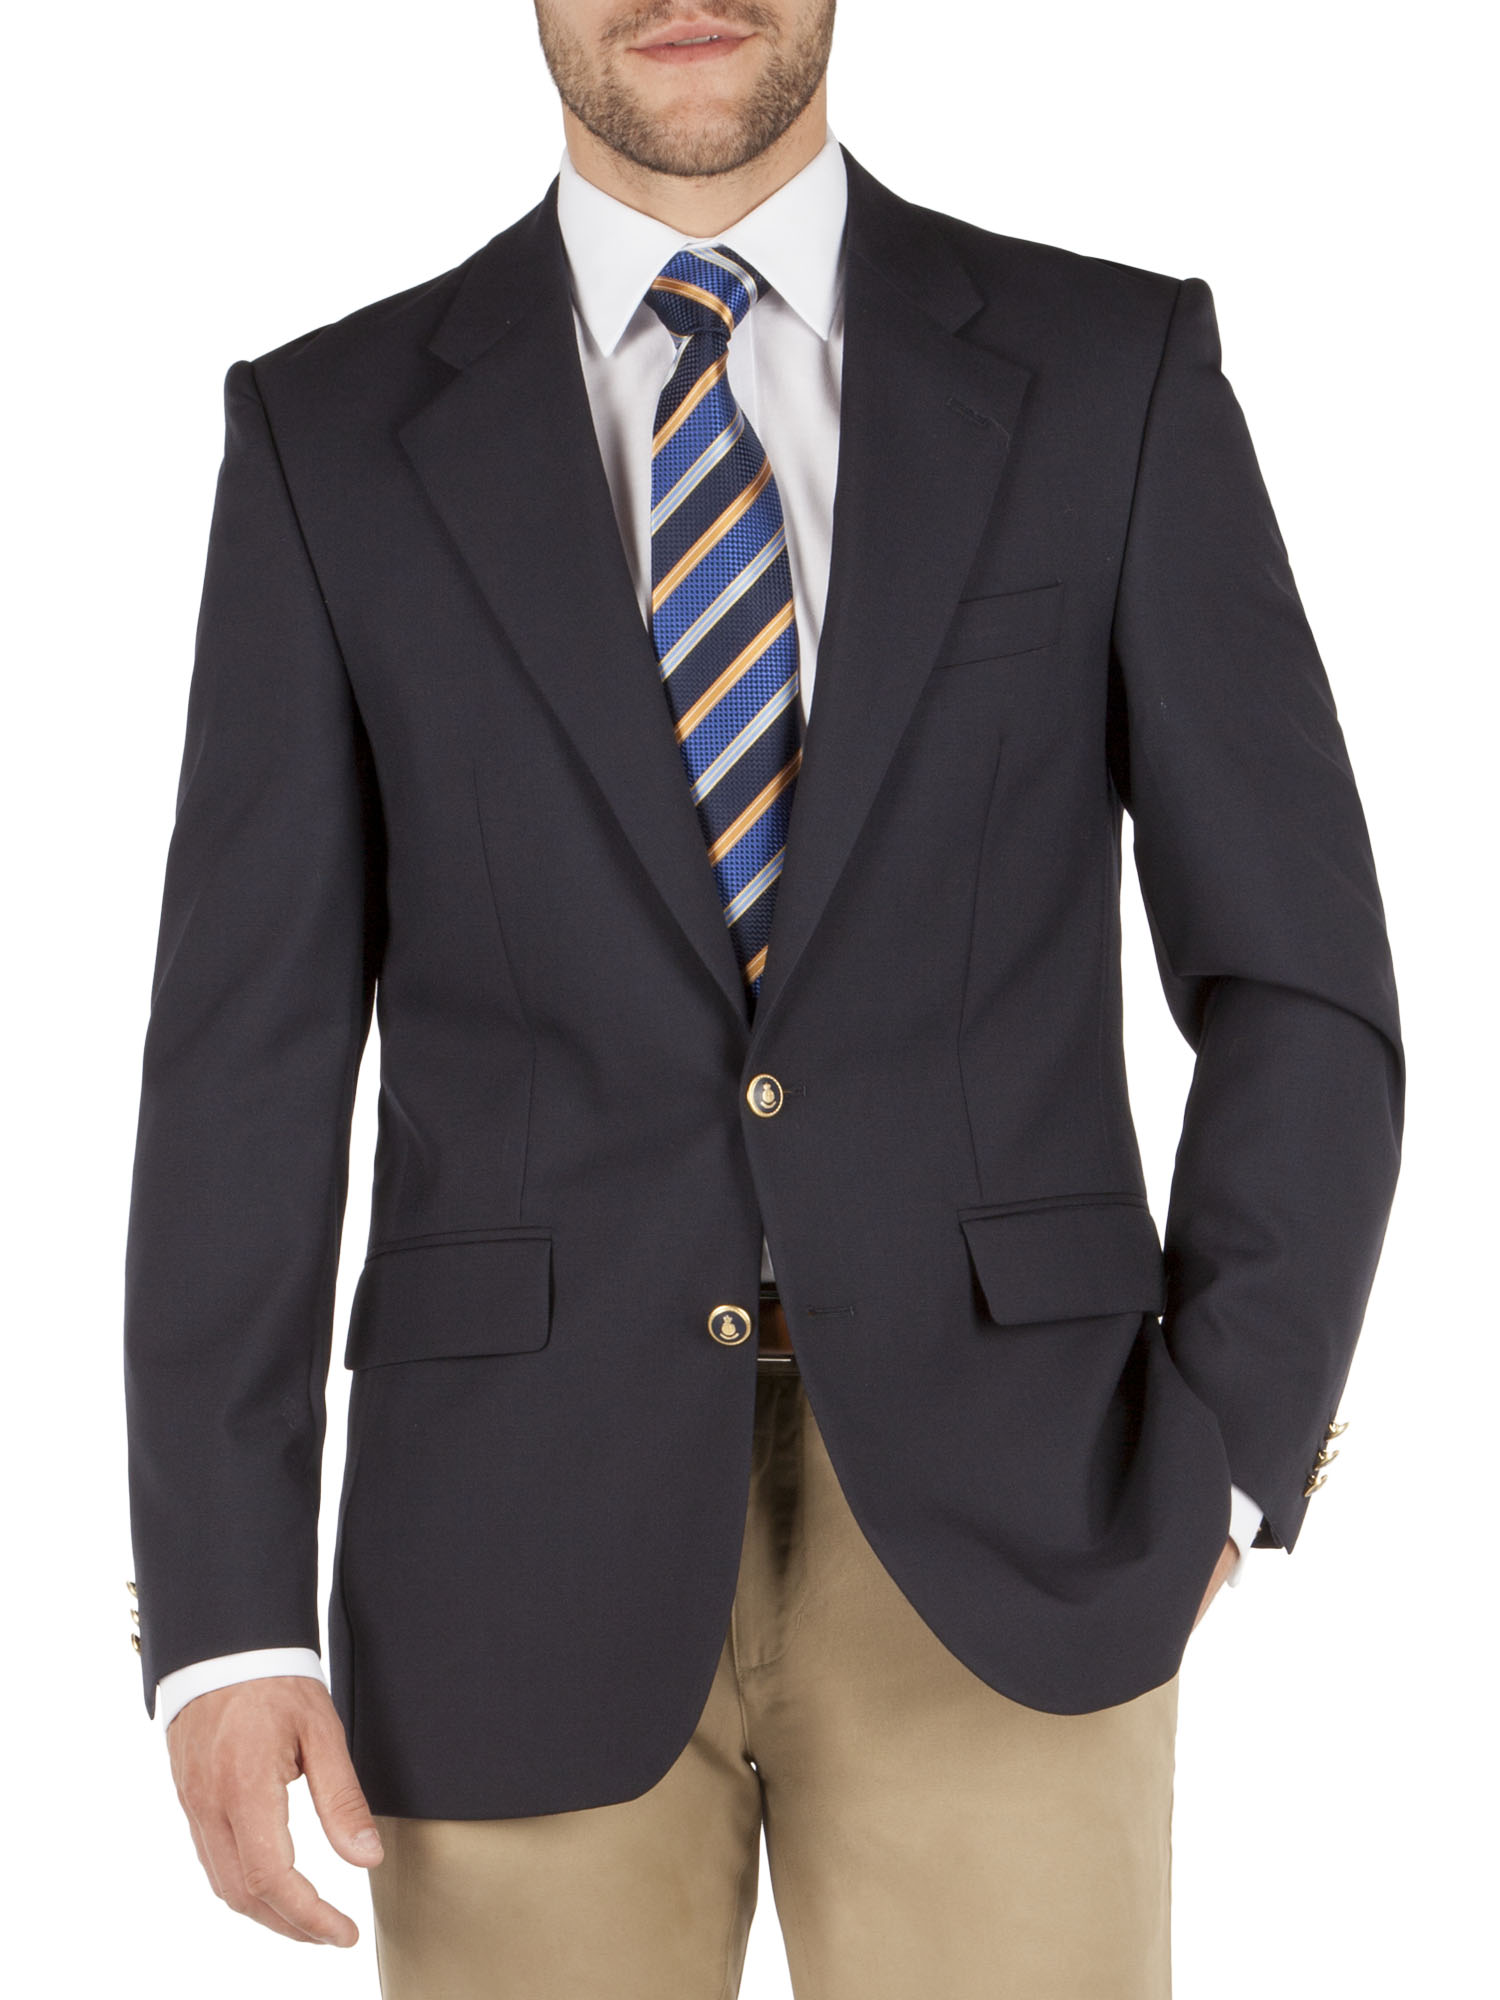 TRADITIONAL MENS NAVY BLUE SINGLE BREASTED BLAZER- currently ...